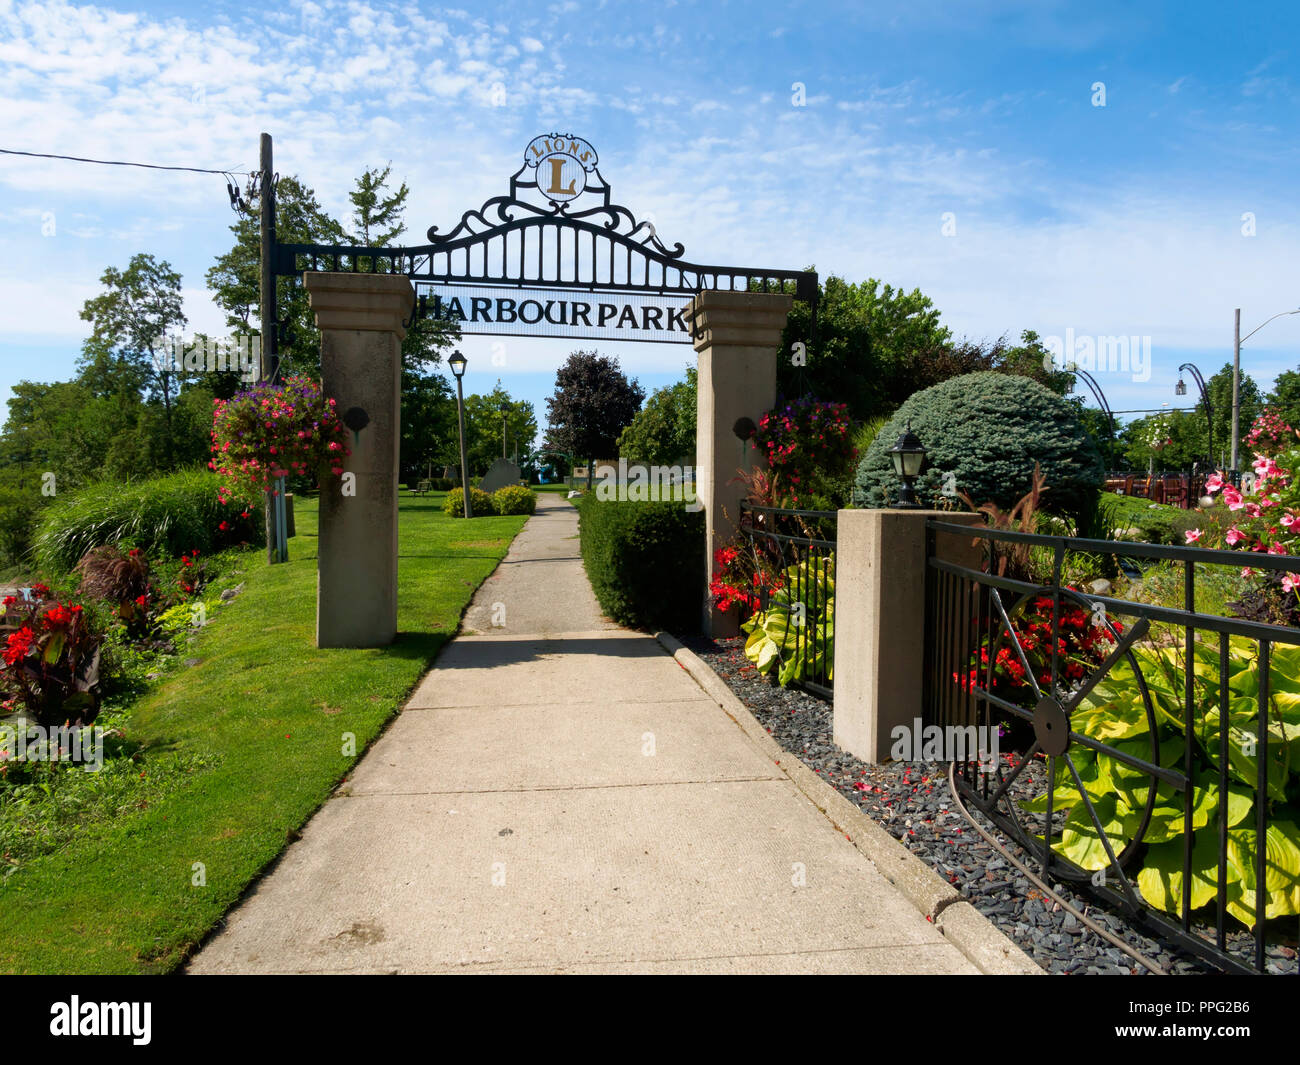 Entrance to Harbour Park, Goderich, Ontario - Stock Image